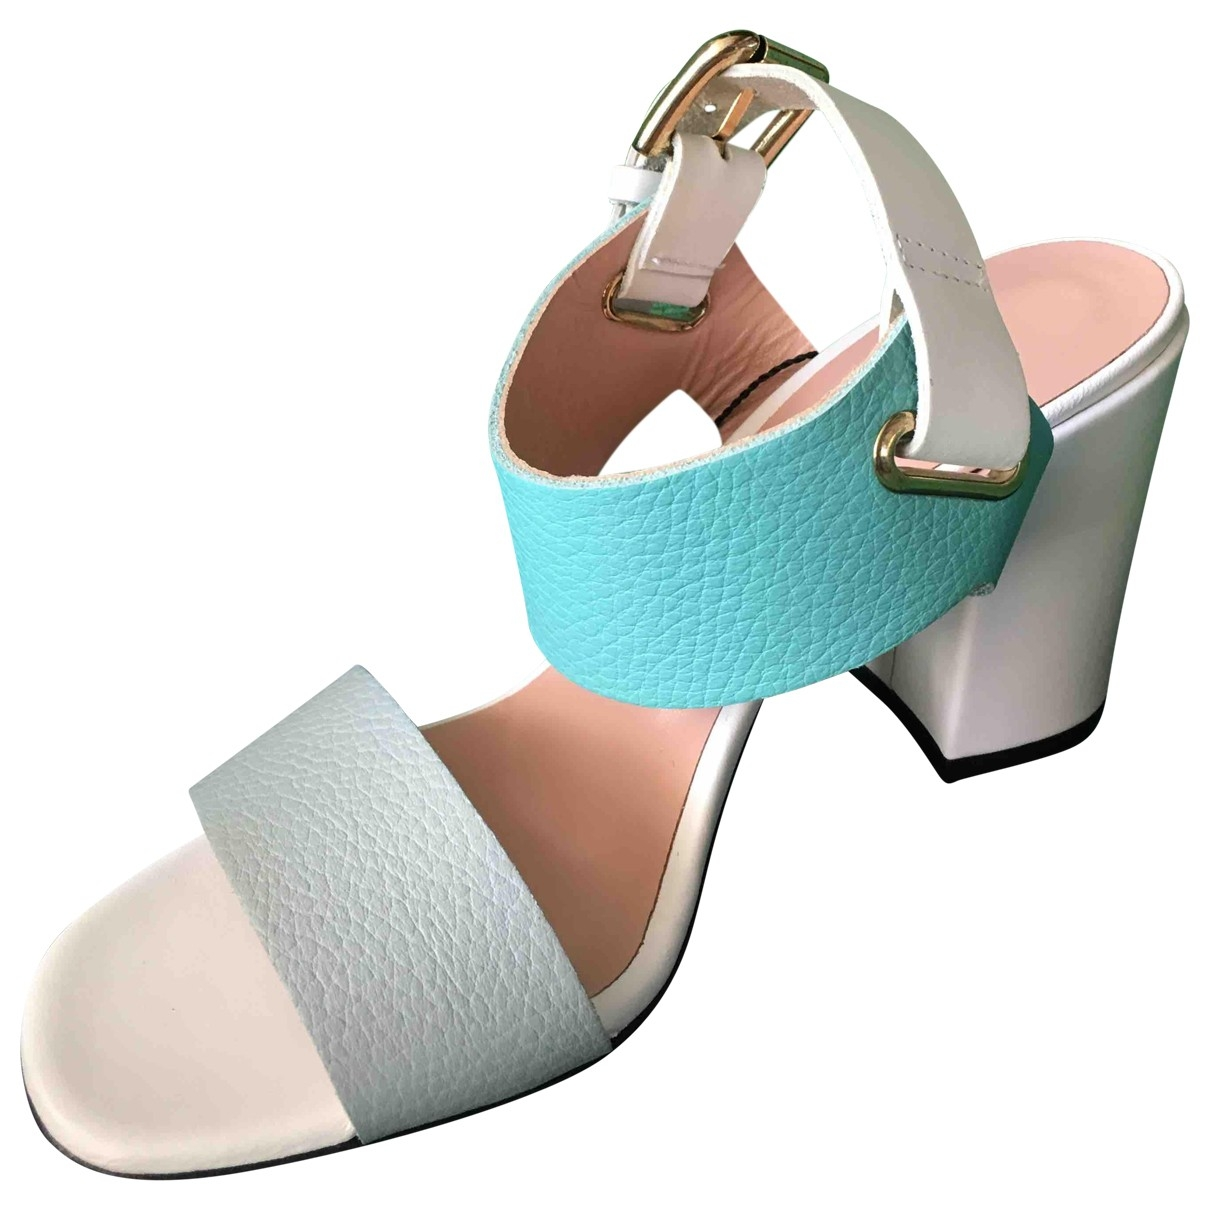 Pollini \N Turquoise Fur Sandals for Women 37.5 EU